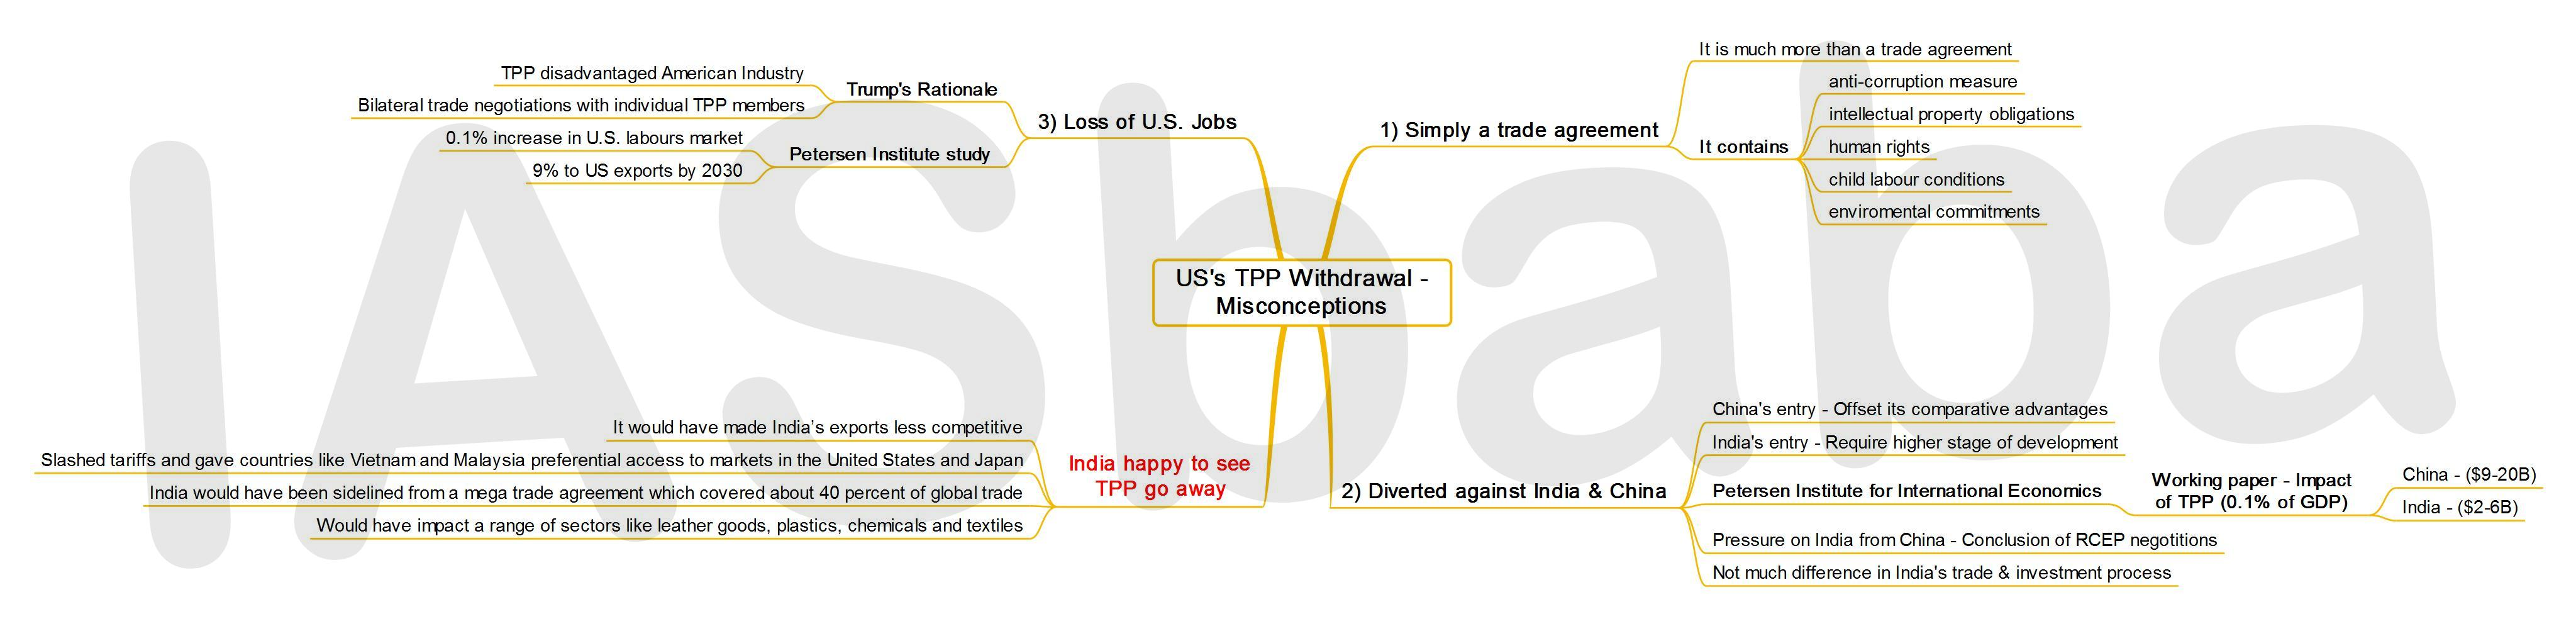 IASbaba's MINDMAP : Issue - US's TPP Withdrawal - Misconceptions